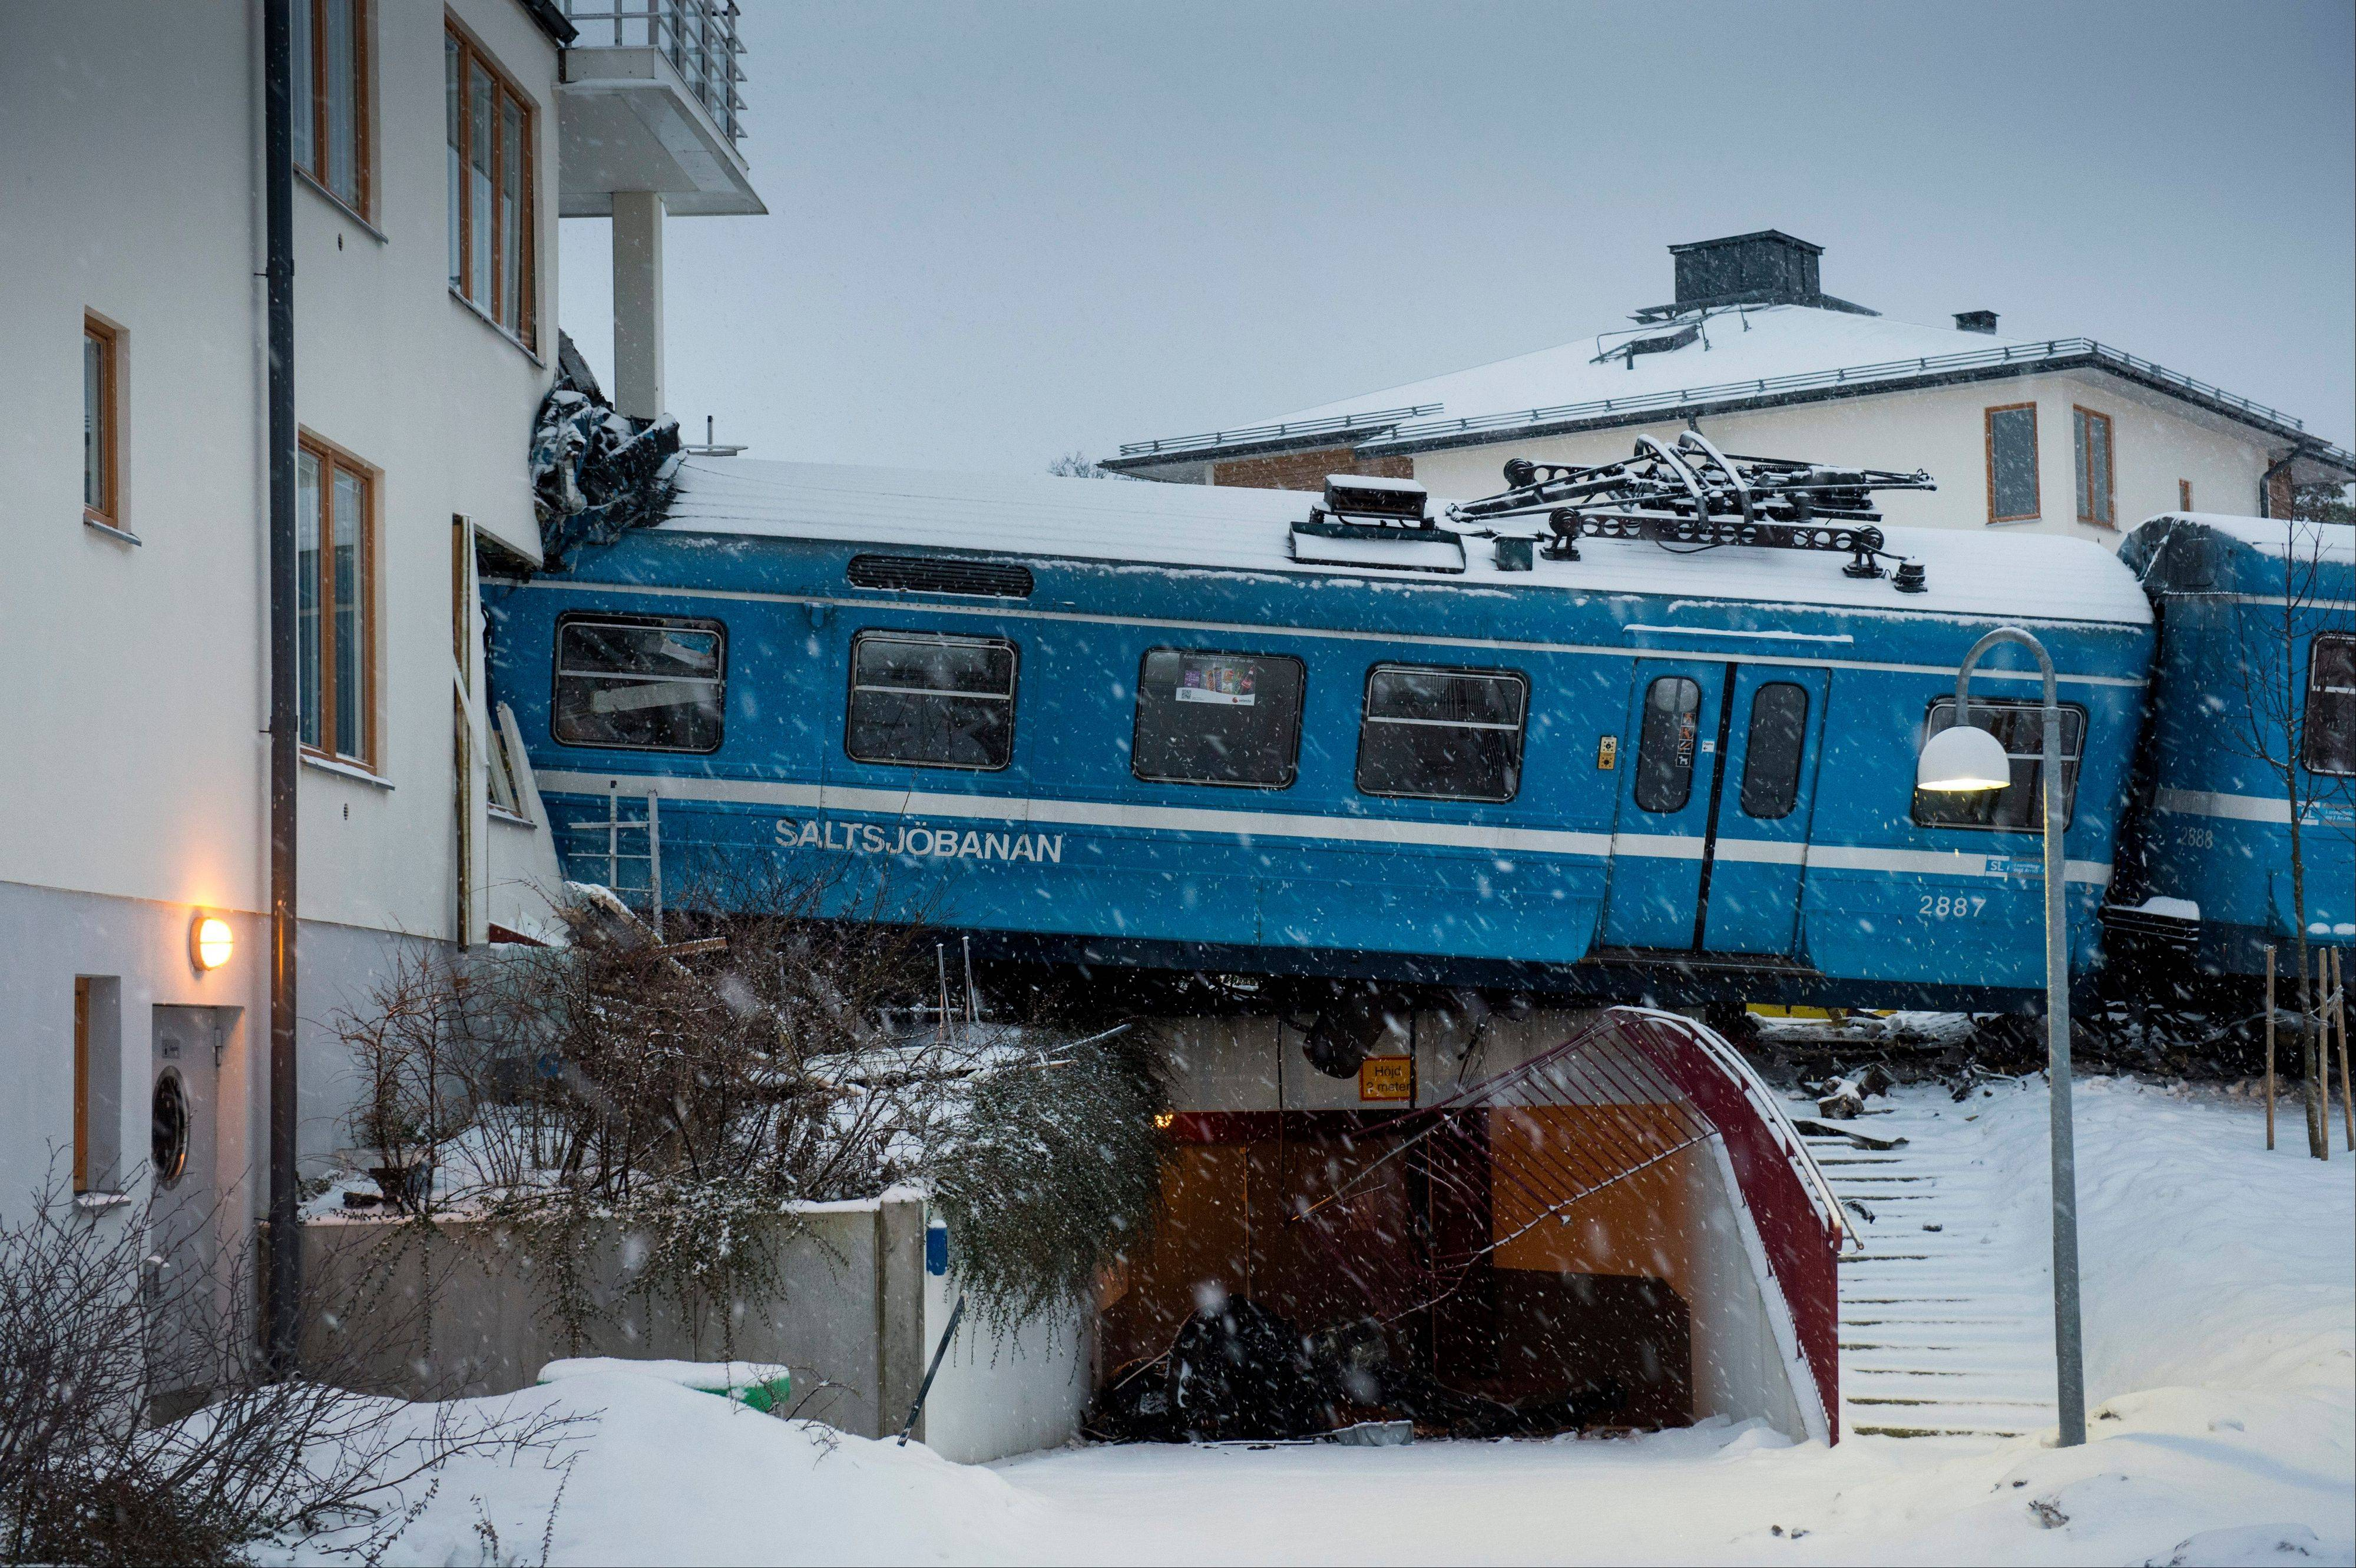 Derailed train that hangs on the edge of the track after it crashed into the side of a residential building in Saltsjobaden outside Stockholm, Tuesday Jan, 15, 2013. A woman obtained the keys to the train and drove it away before it crashed into the building. The woman was injured in the incident and there are no reports of injuries of people in the building.